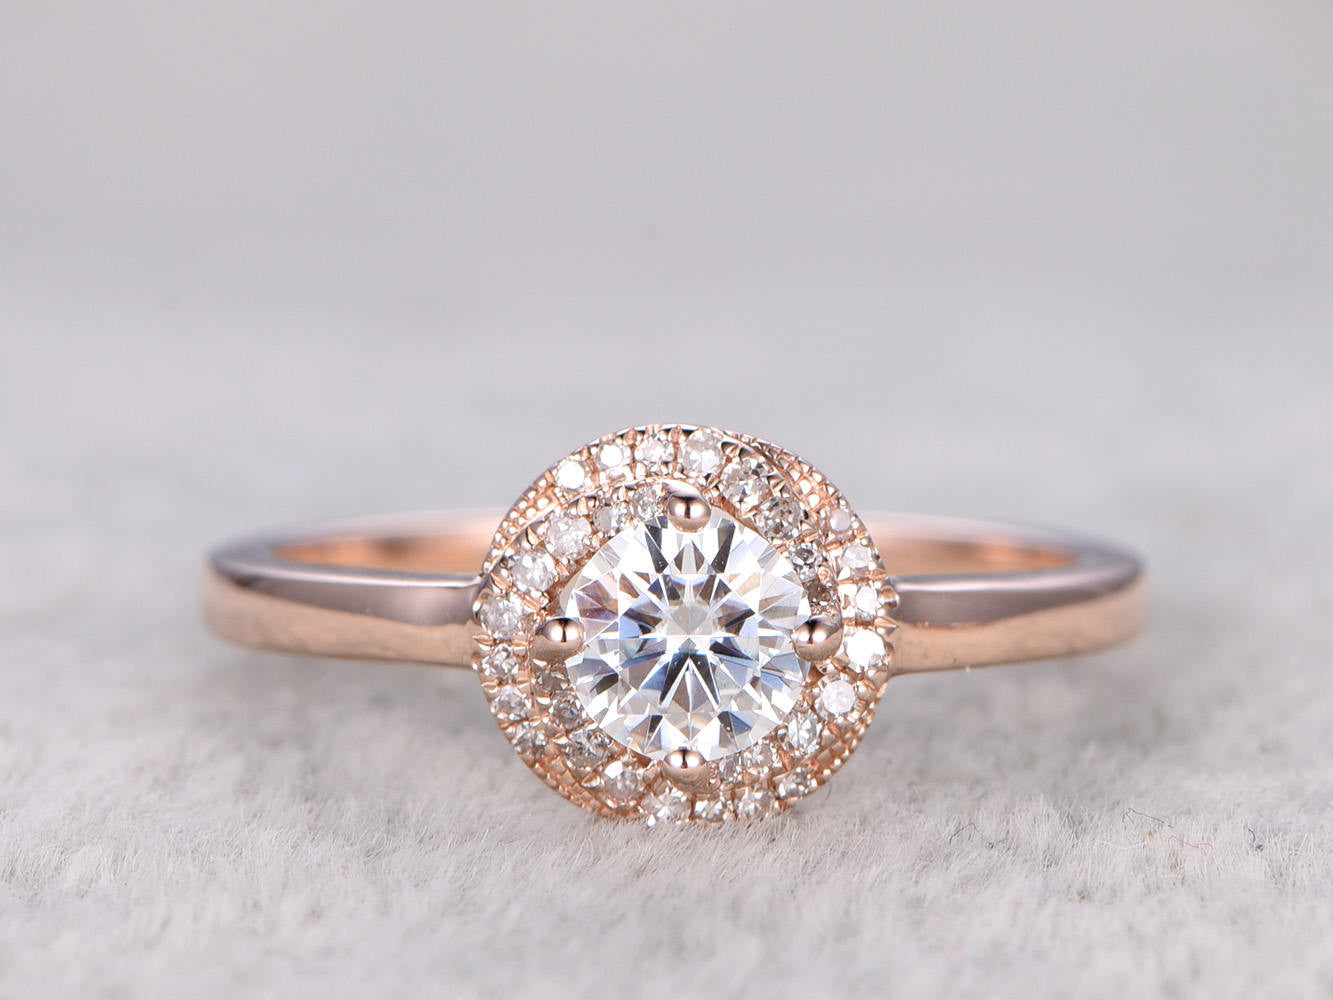 brilliant Moissanite Engagement ring Rose gold,Plain gold band,Diamond floral halo,14k,5mm Round,Gemstone Promise Bridal Ring,Anniversary